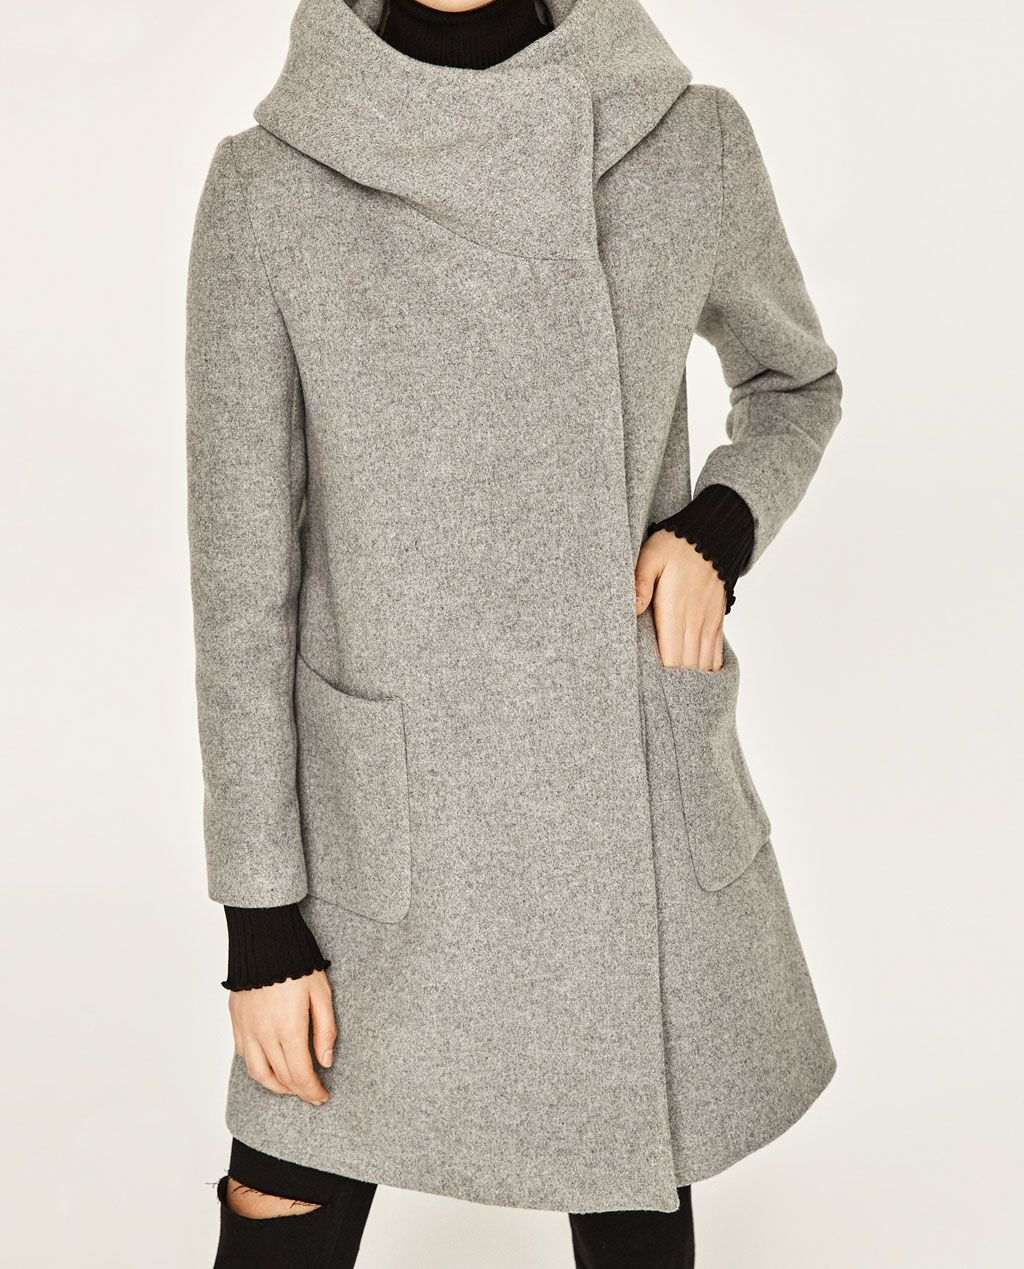 ZARA - COLLECTION SS/17 - COAT WITH WRAP COLLAR